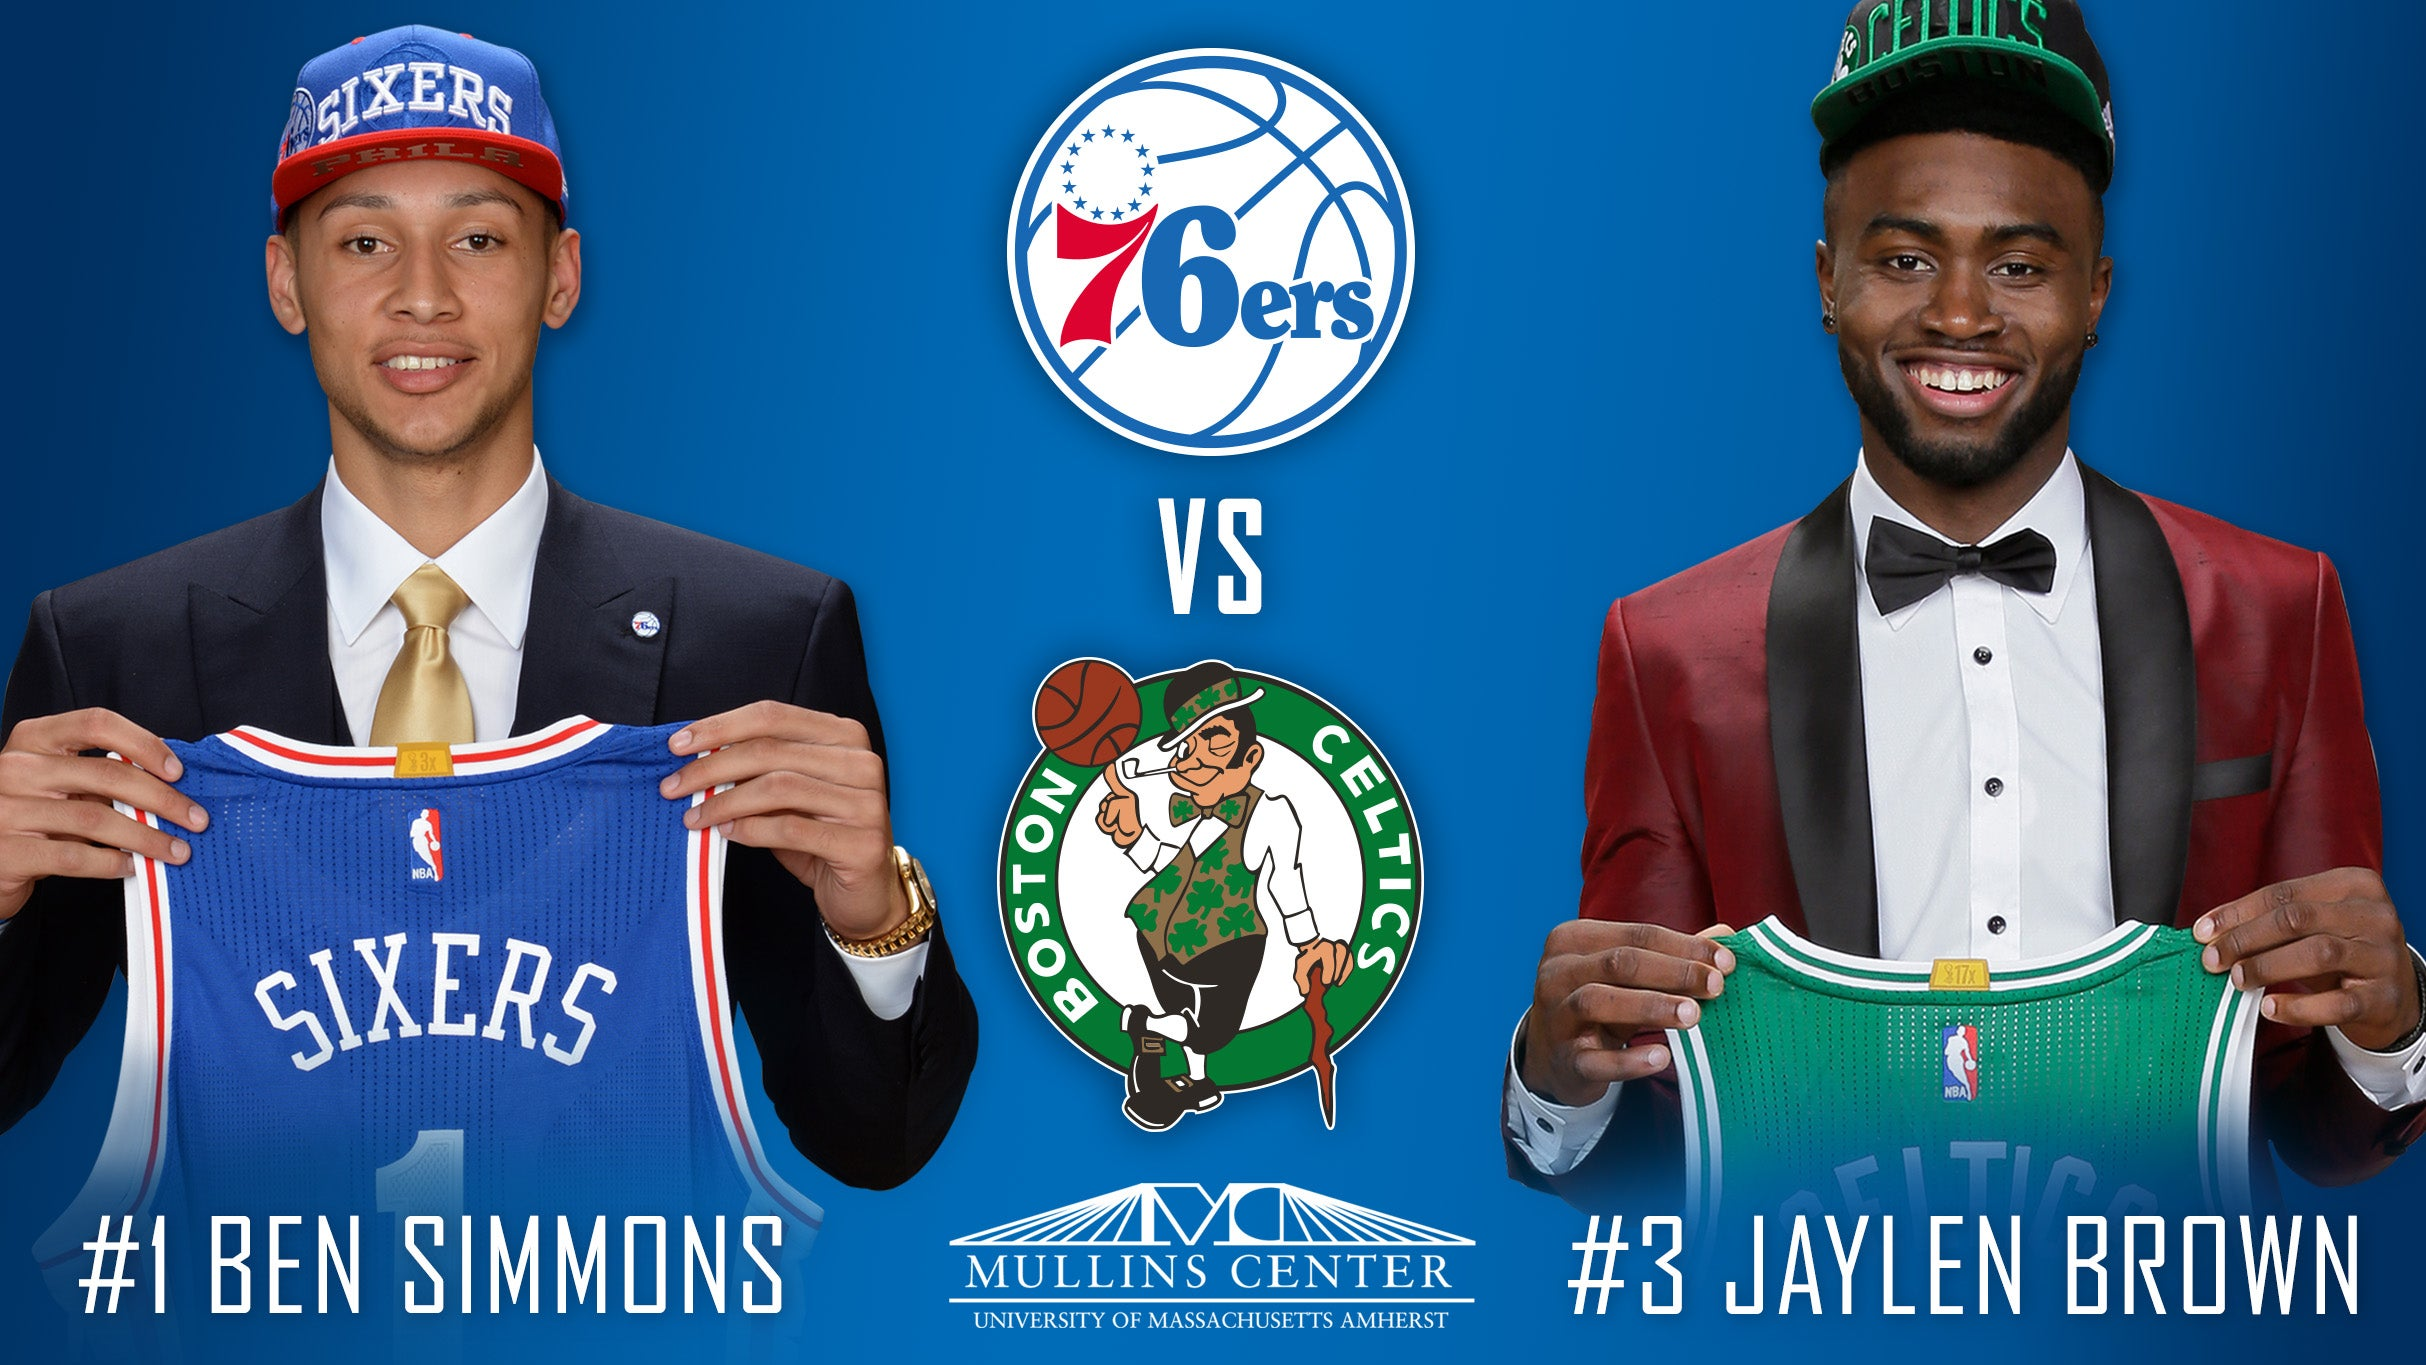 76ers vs celtics - photo #35